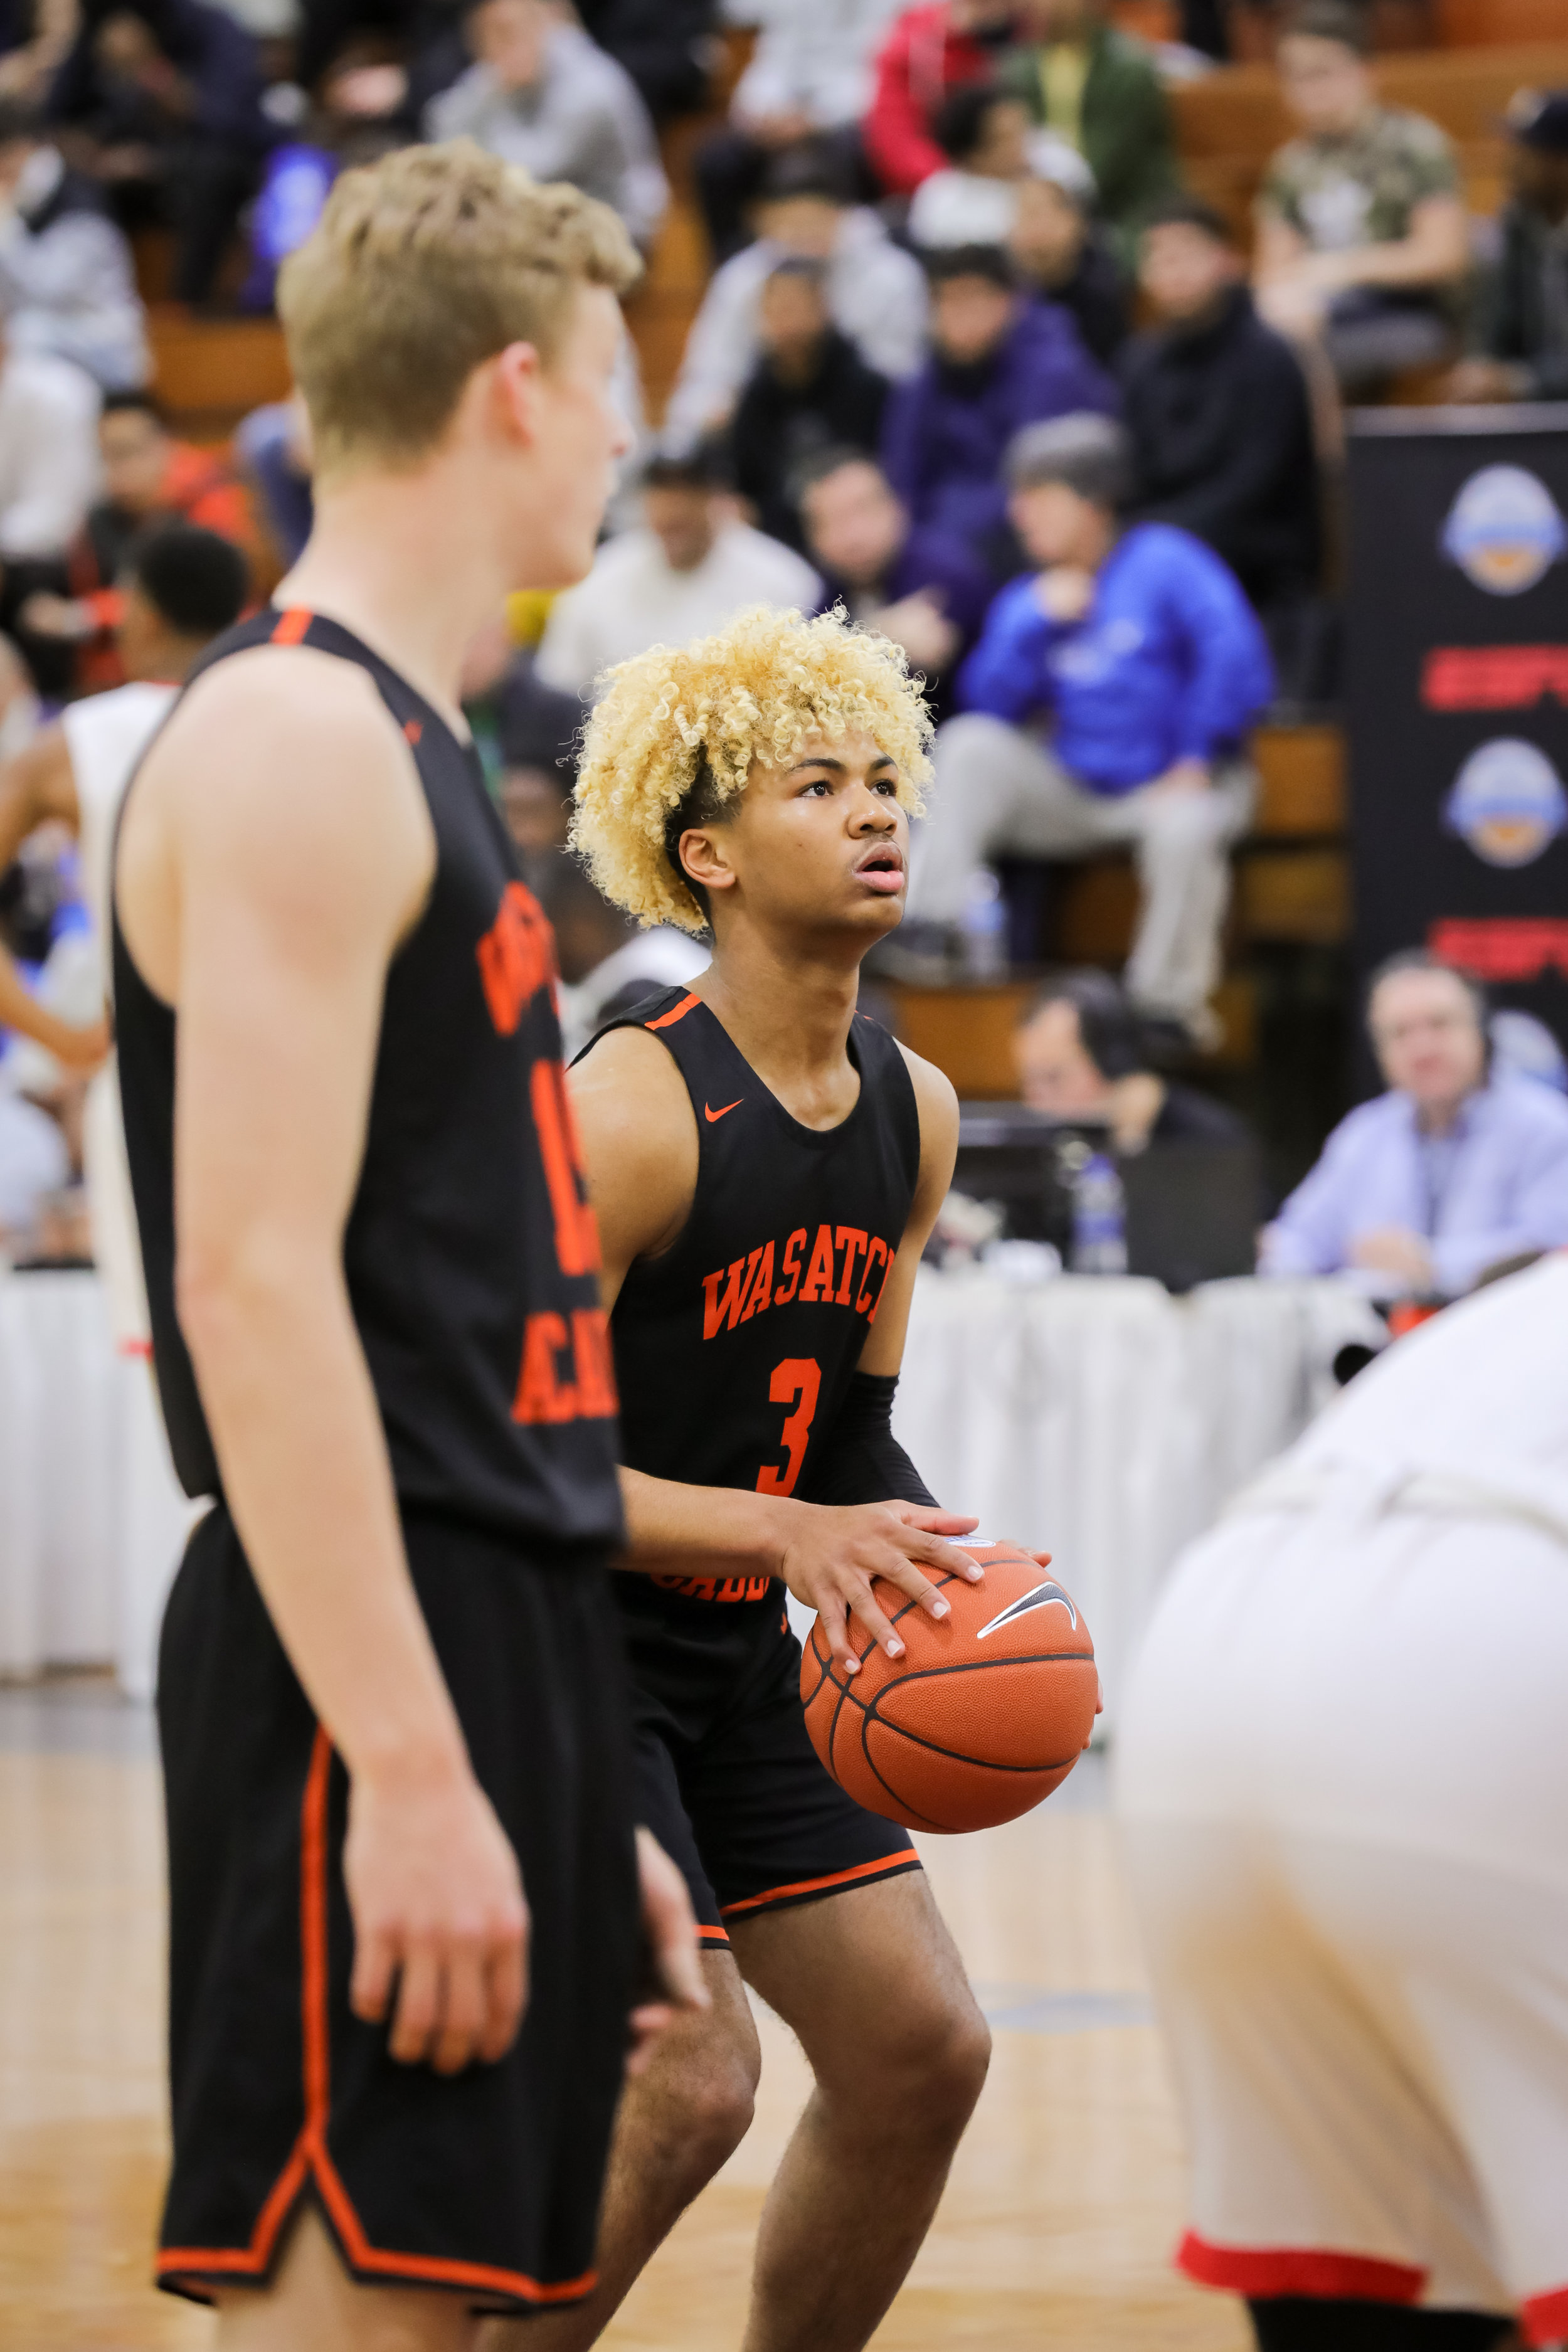 BBall_Geico_Nationals_2019 (23 of 59).jpg